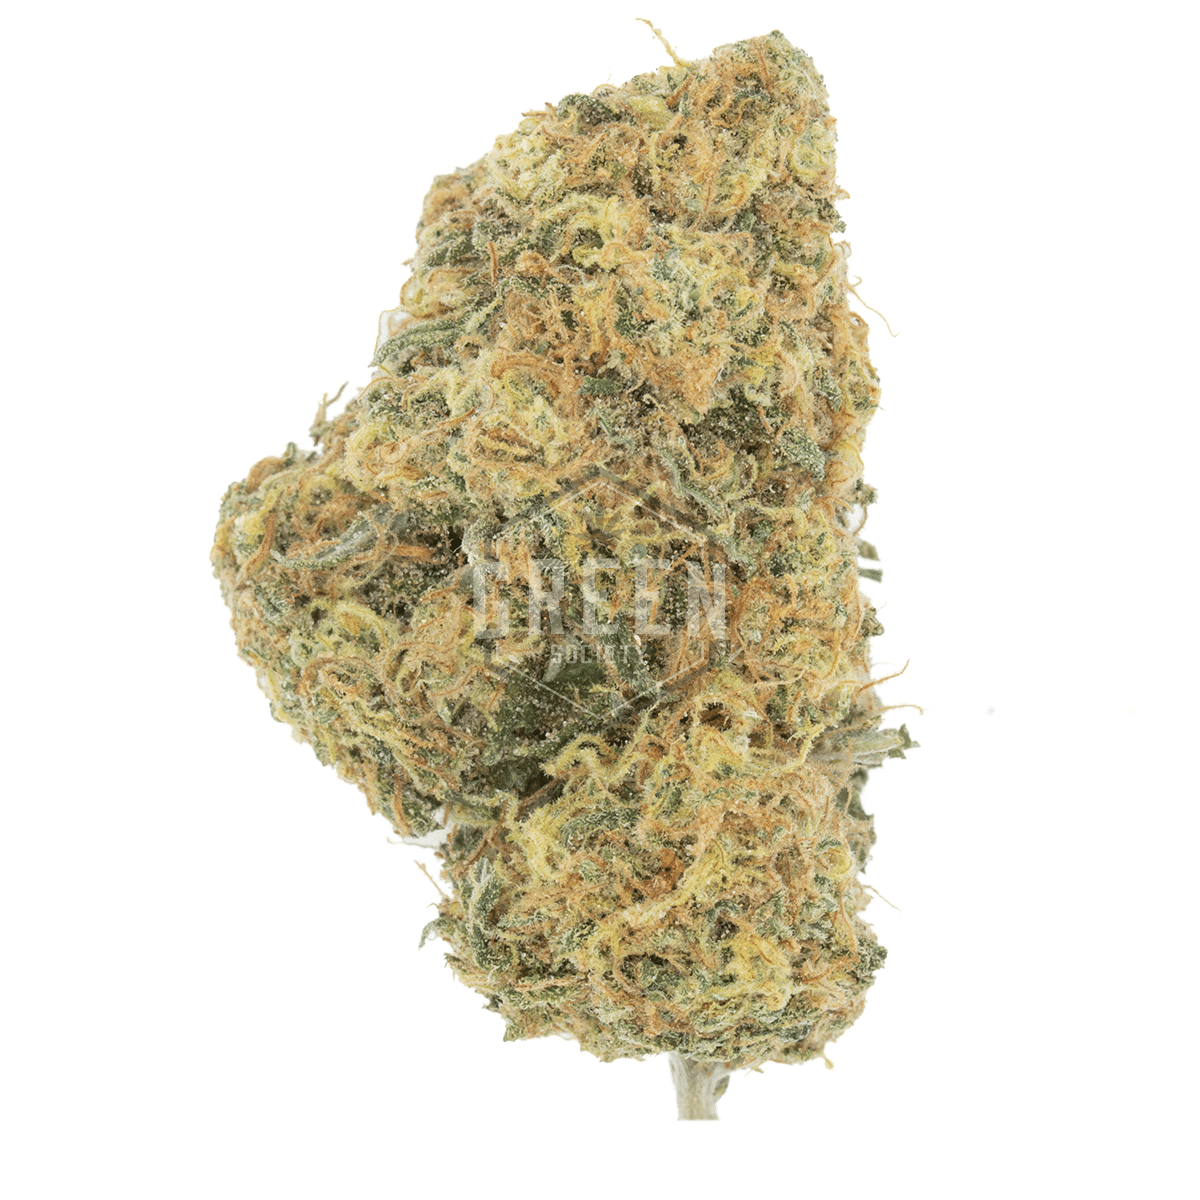 Annihilator Kush by Green Society - Image © 2018 Green Society. All Rights Reserved.